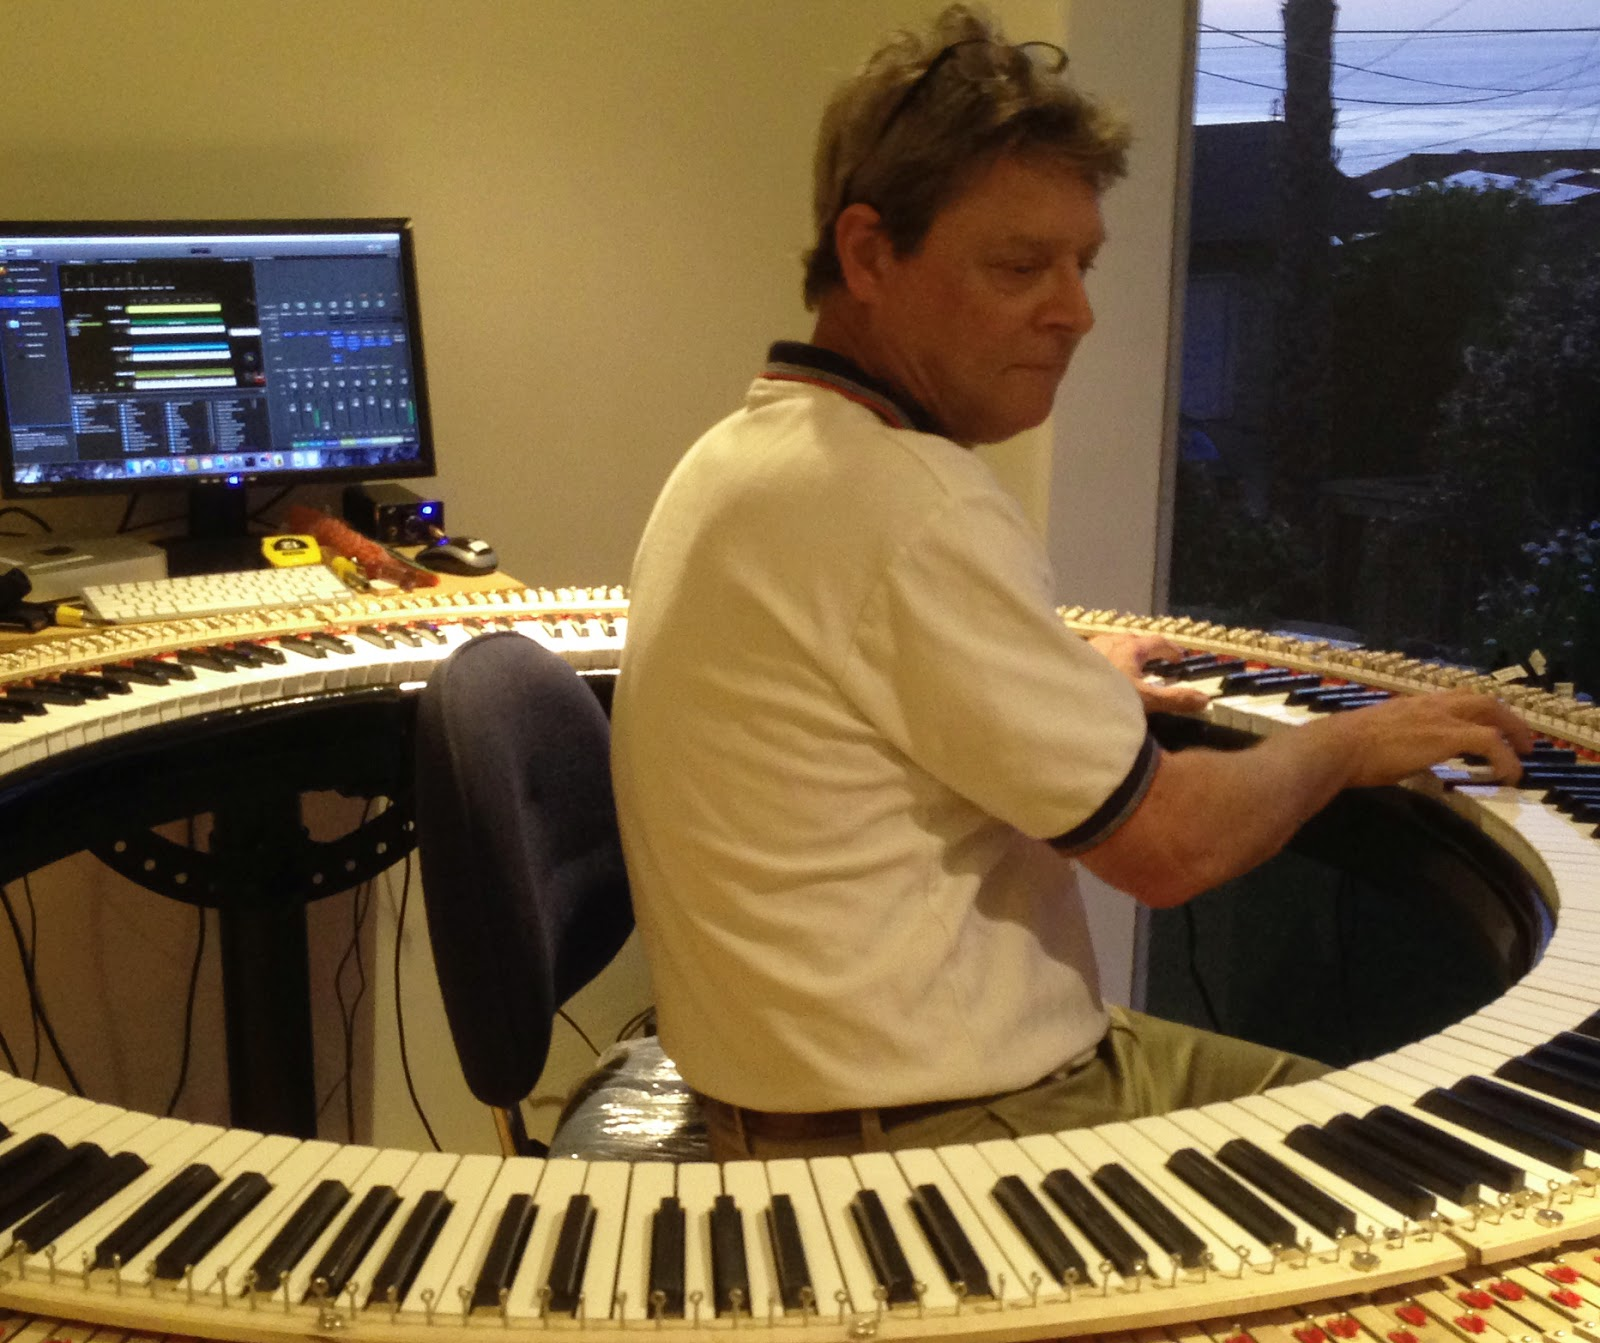 Dave Starkey testing out the Pianoarc